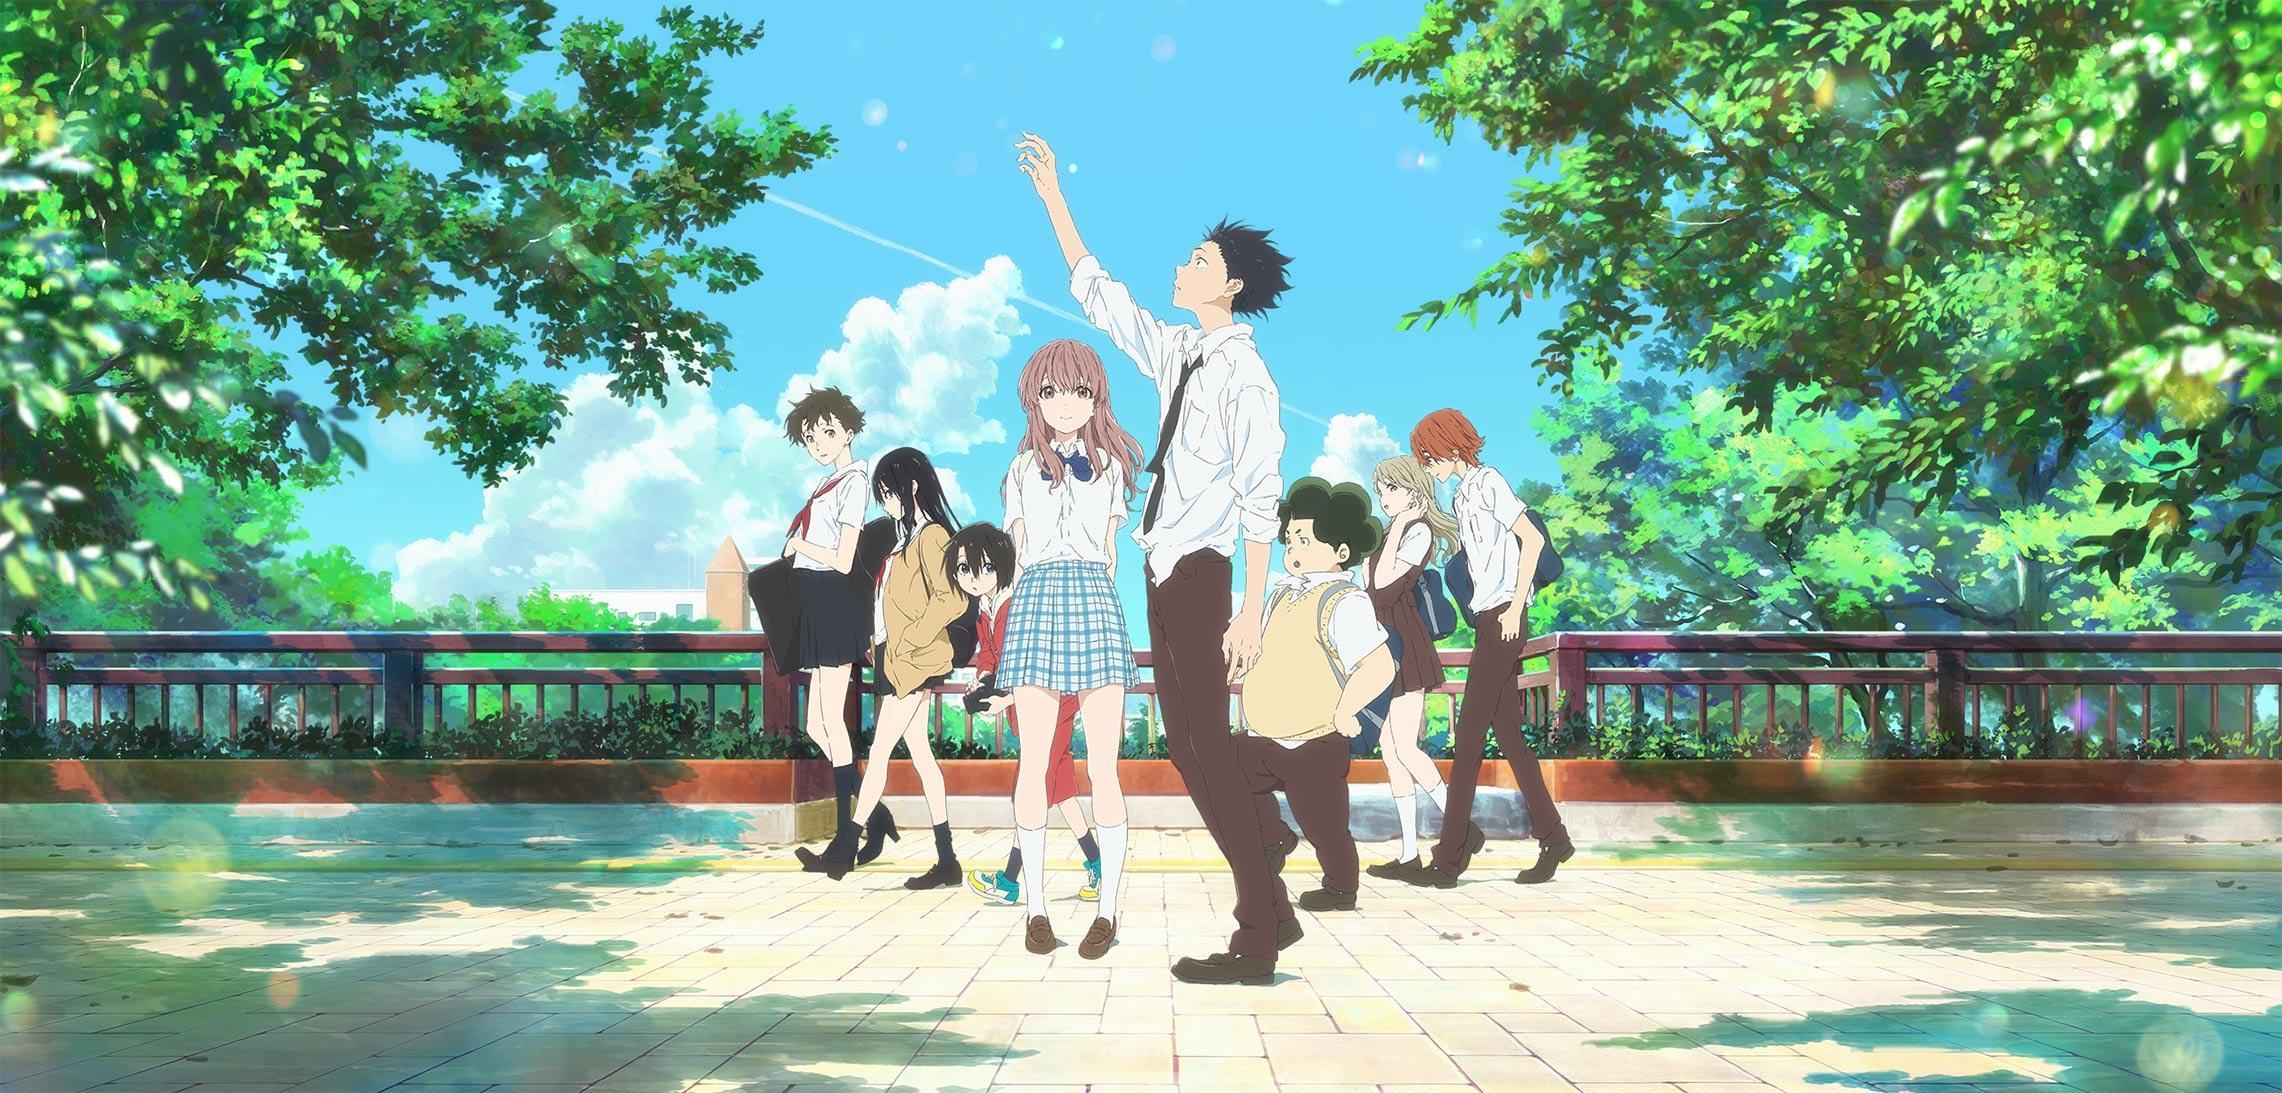 A Silent Voice 2 Release Date, Cast, and Other Updates About Sequel